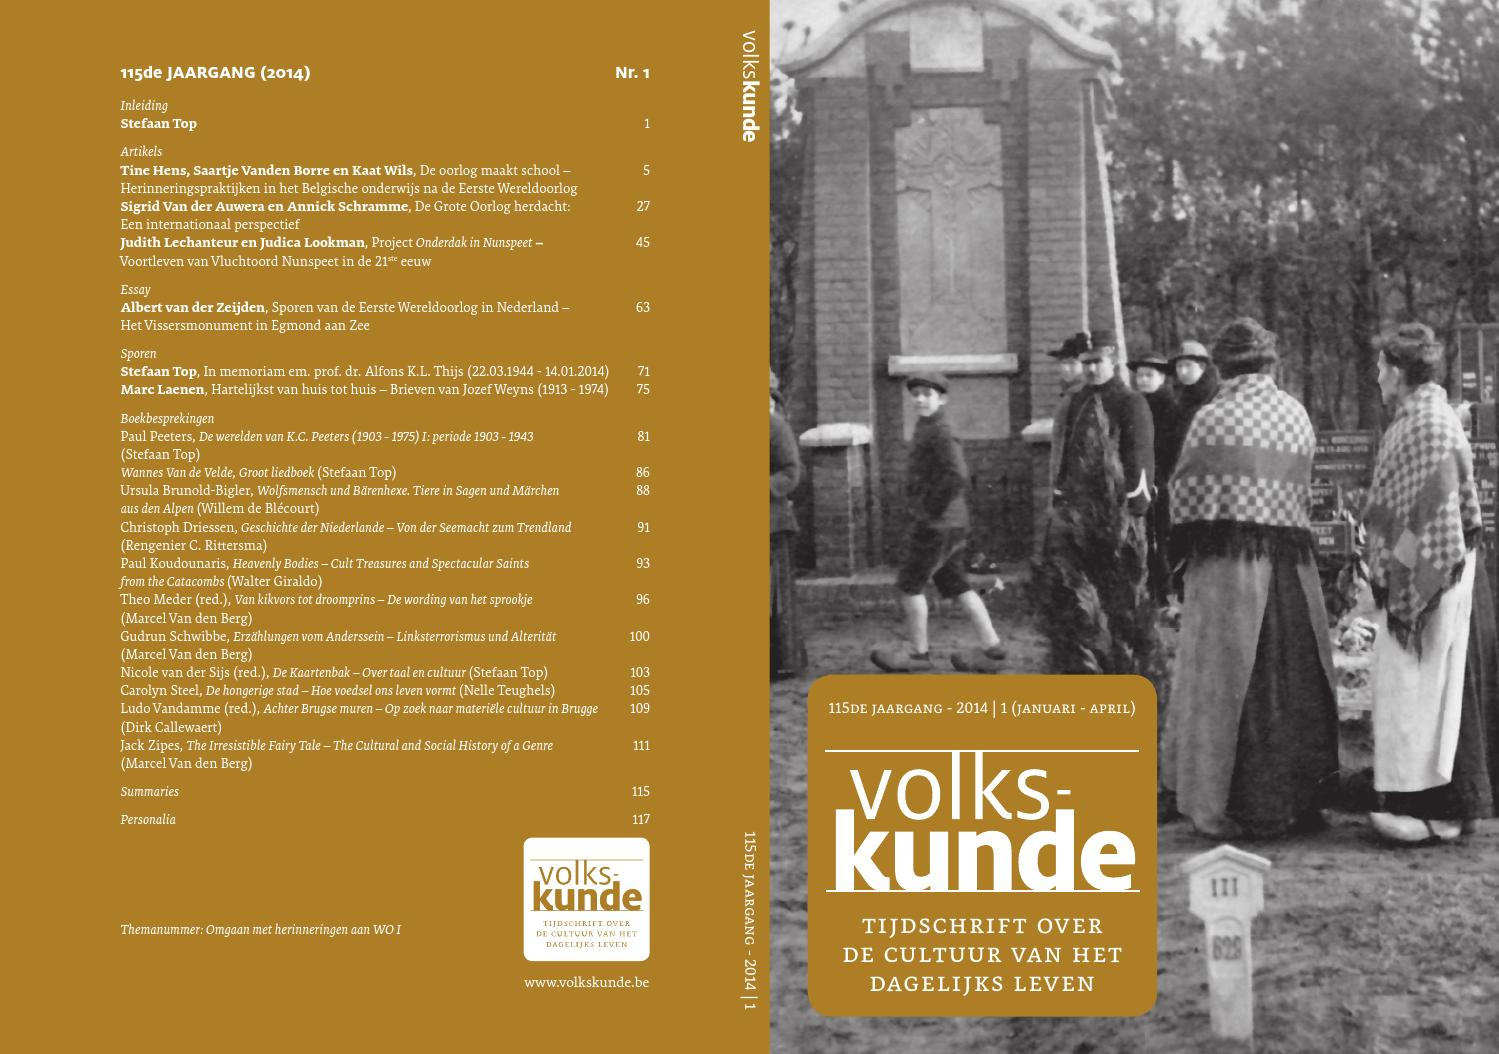 Volkskunde 113 - 2012:1 by Paul Catteeuw - issuu